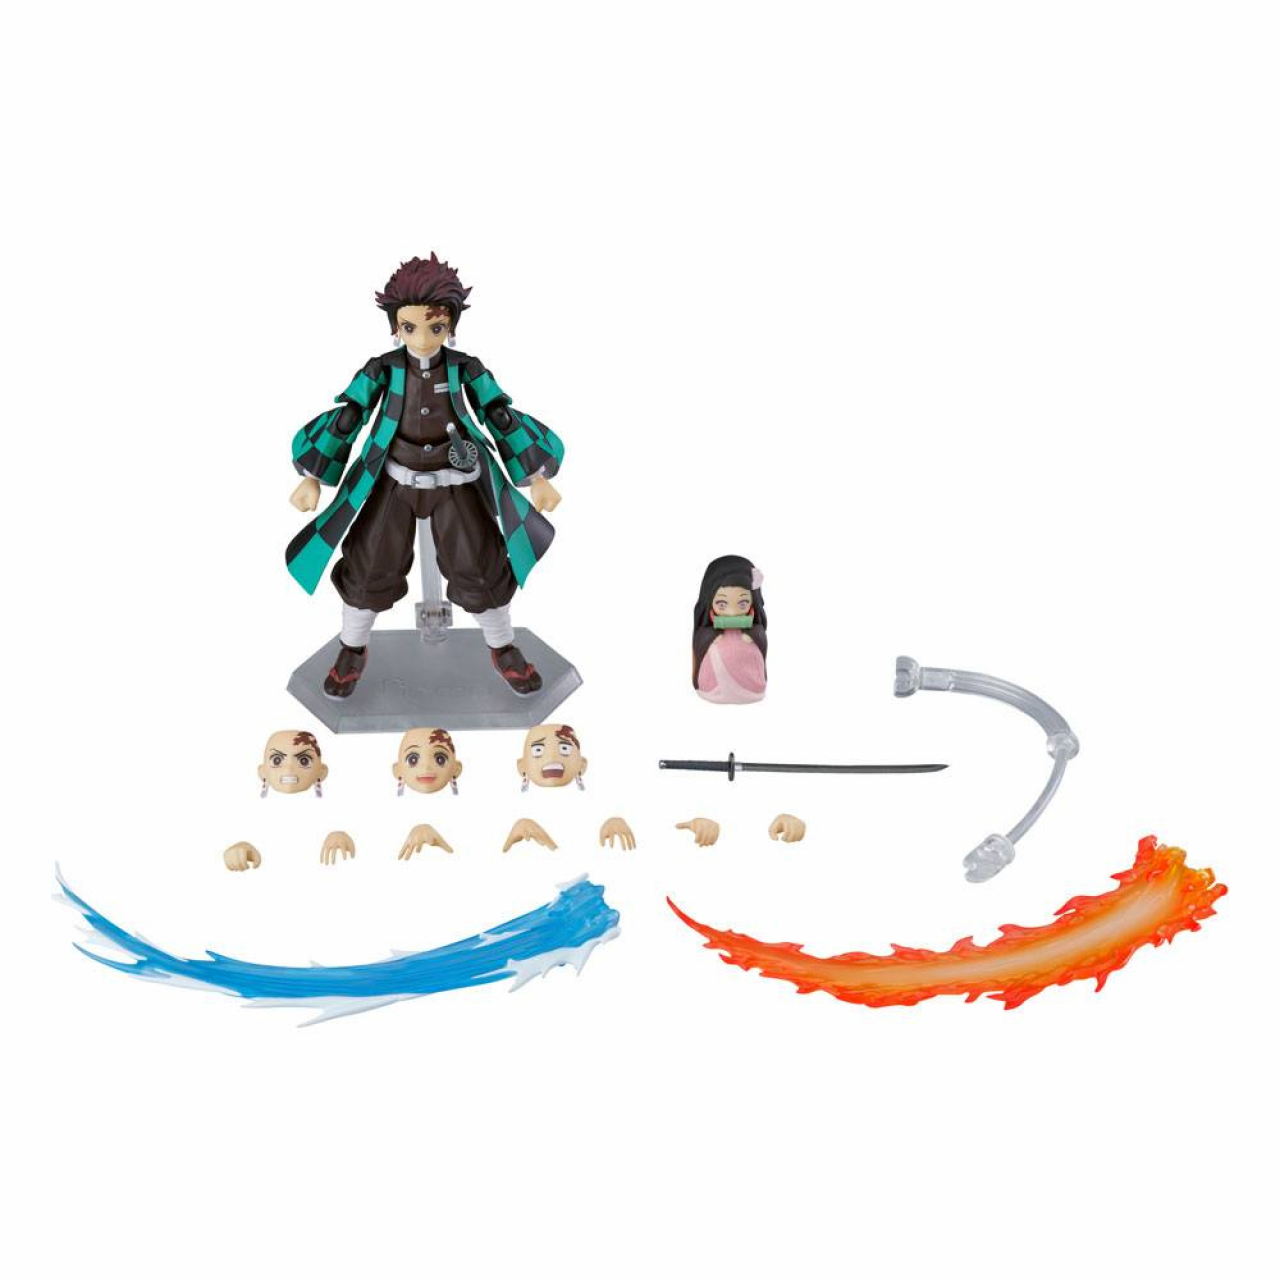 Demon Slayer: Kimetsu no Yaiba Figma Action Figure Tanjiro Kamado DX Edition 13 cm